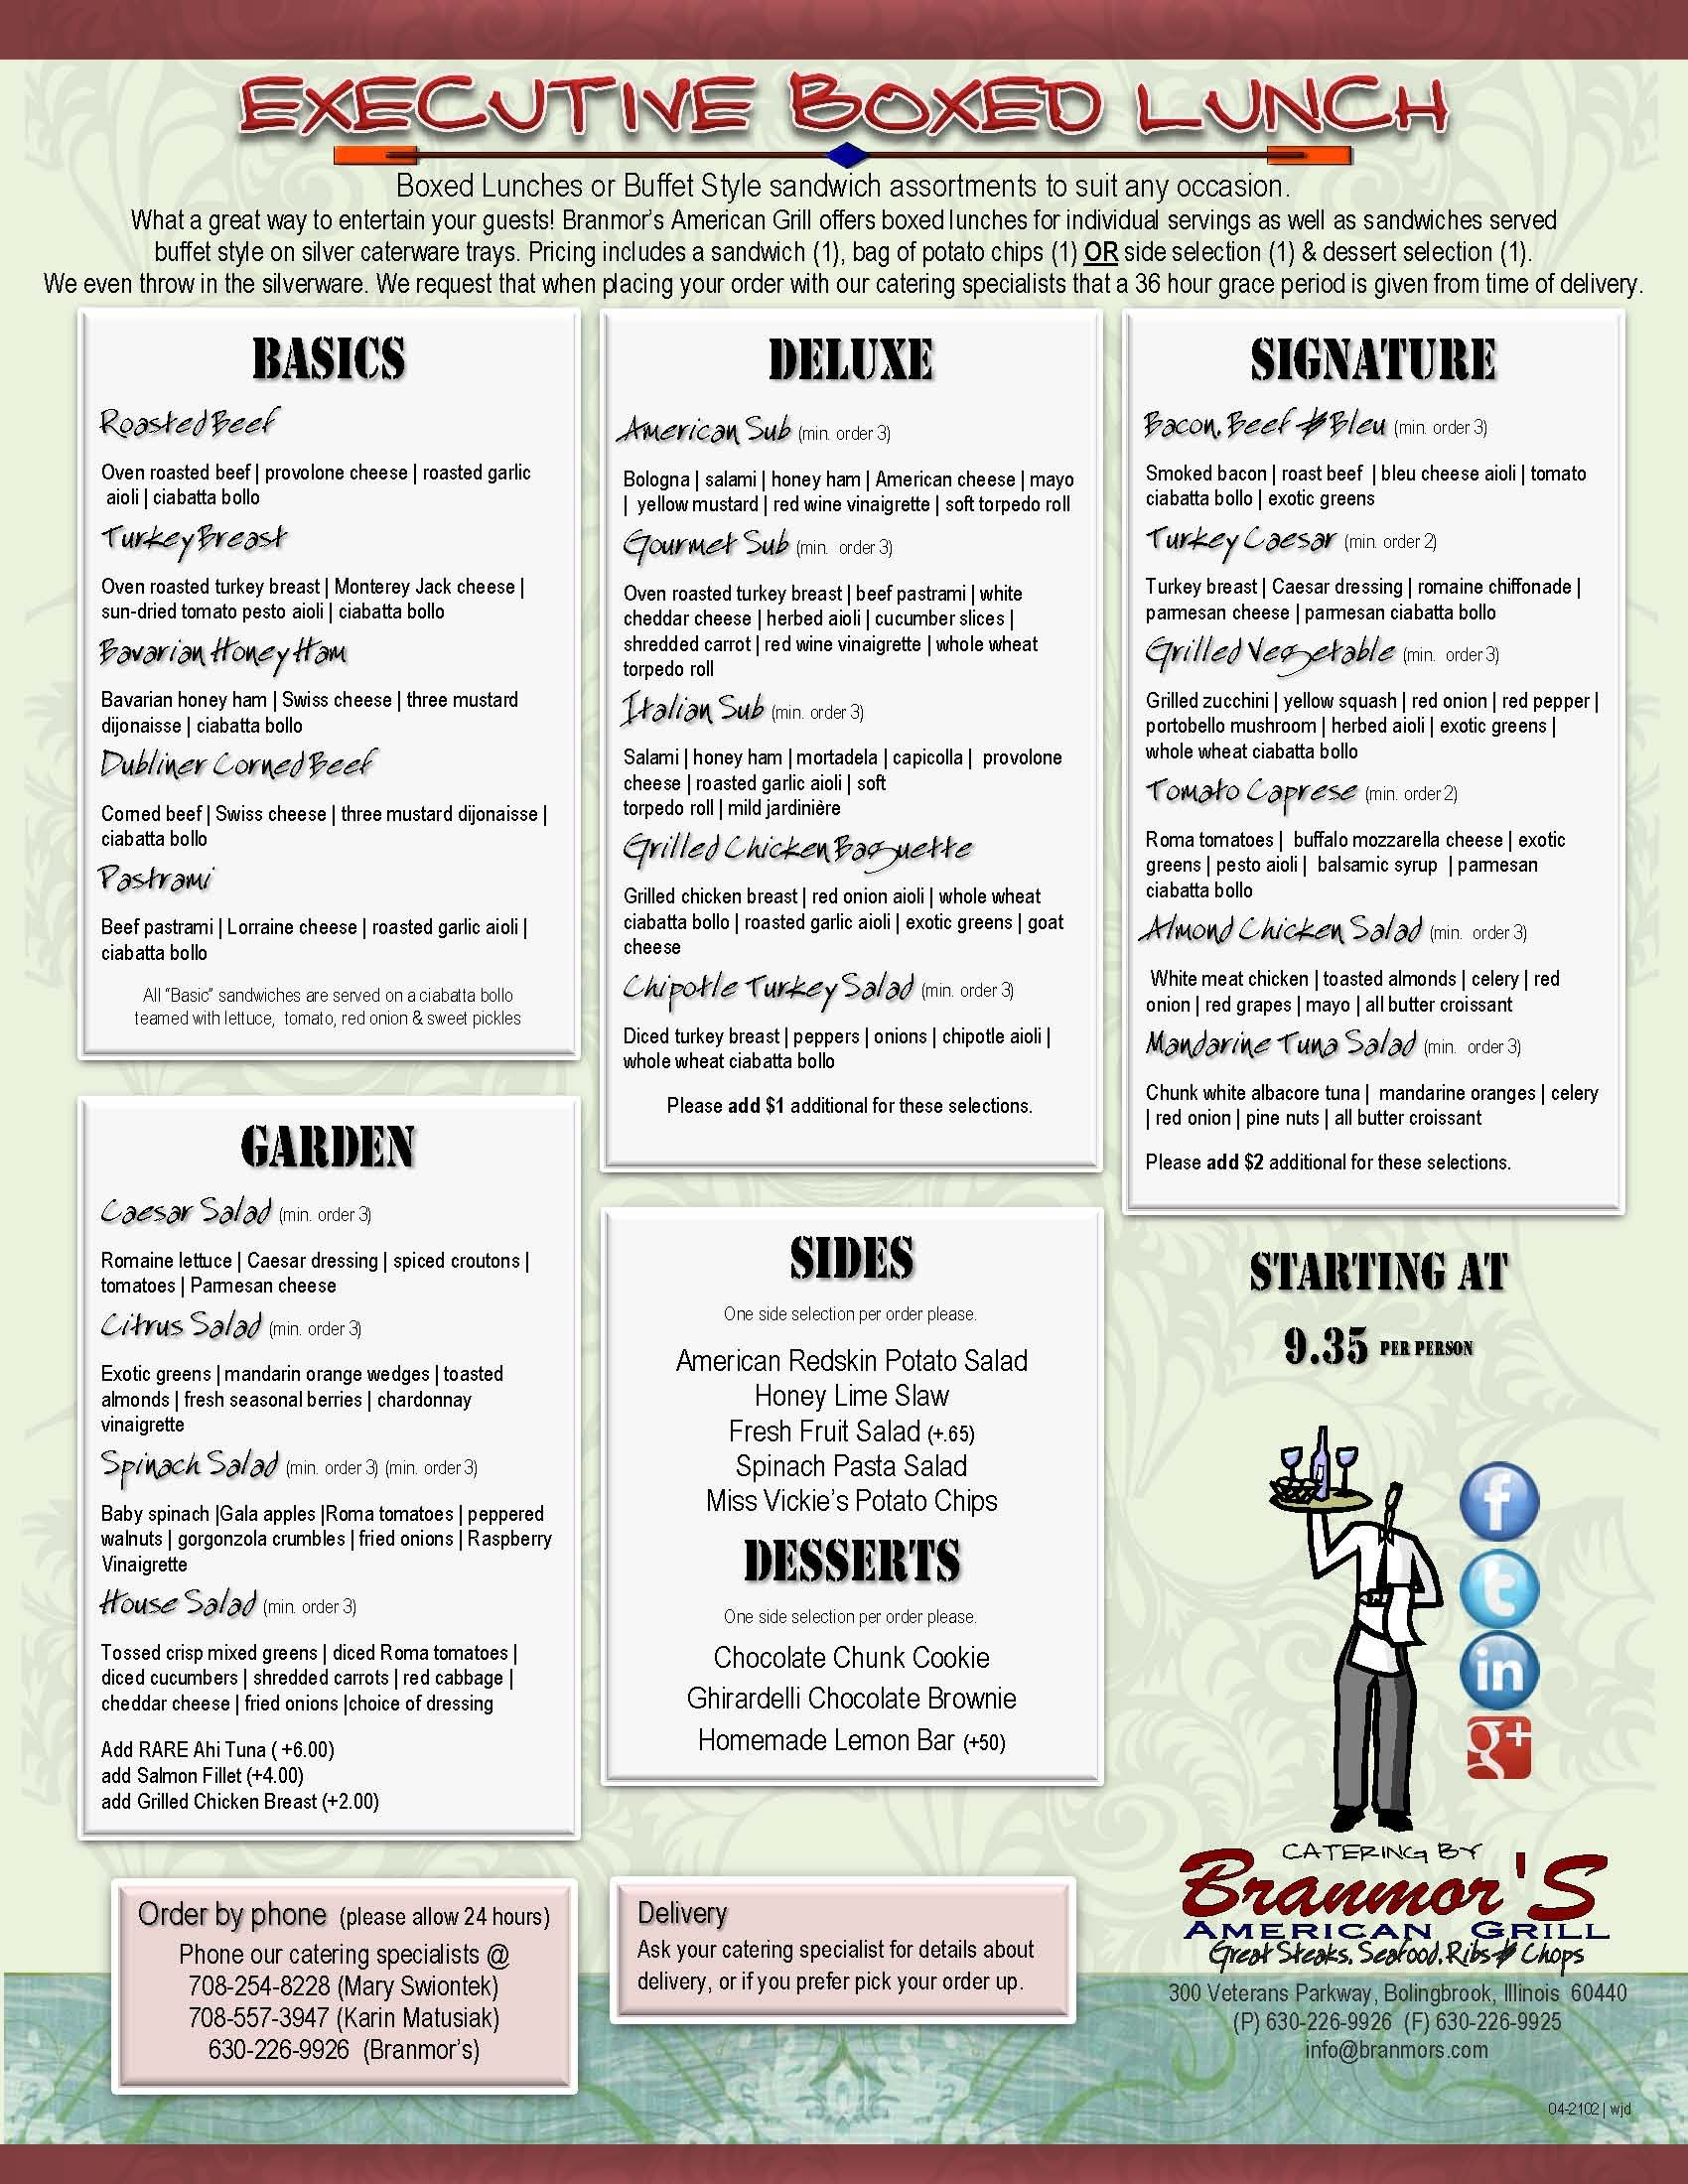 2012 Catering Executive Box Lunch Menu Branmor S American Grill Catering Menu Design Catering Boxed Lunch Catering